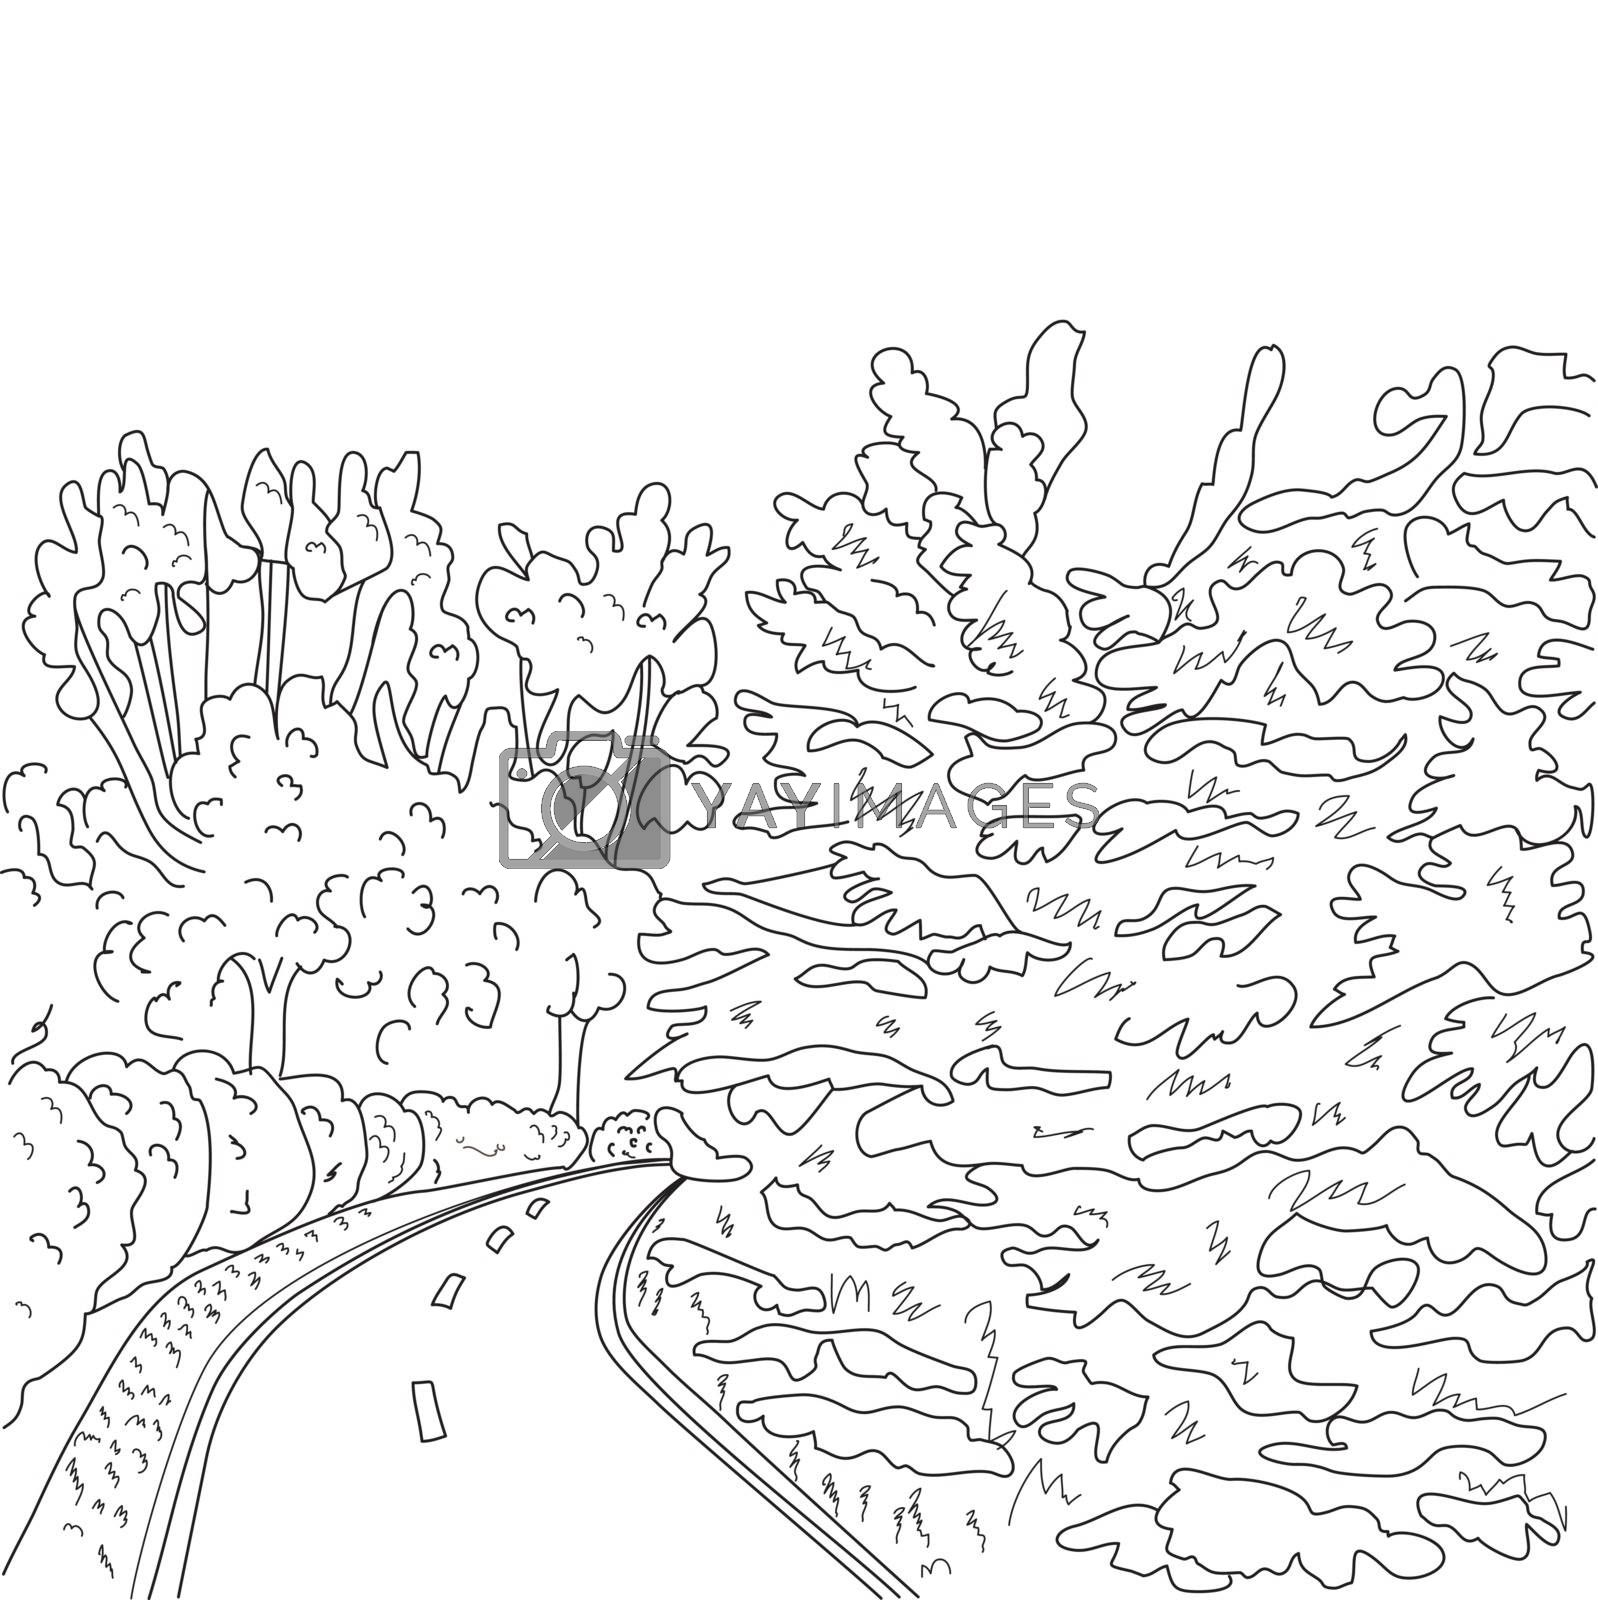 vector park road and trees graphic black and white landscape sketch illustration